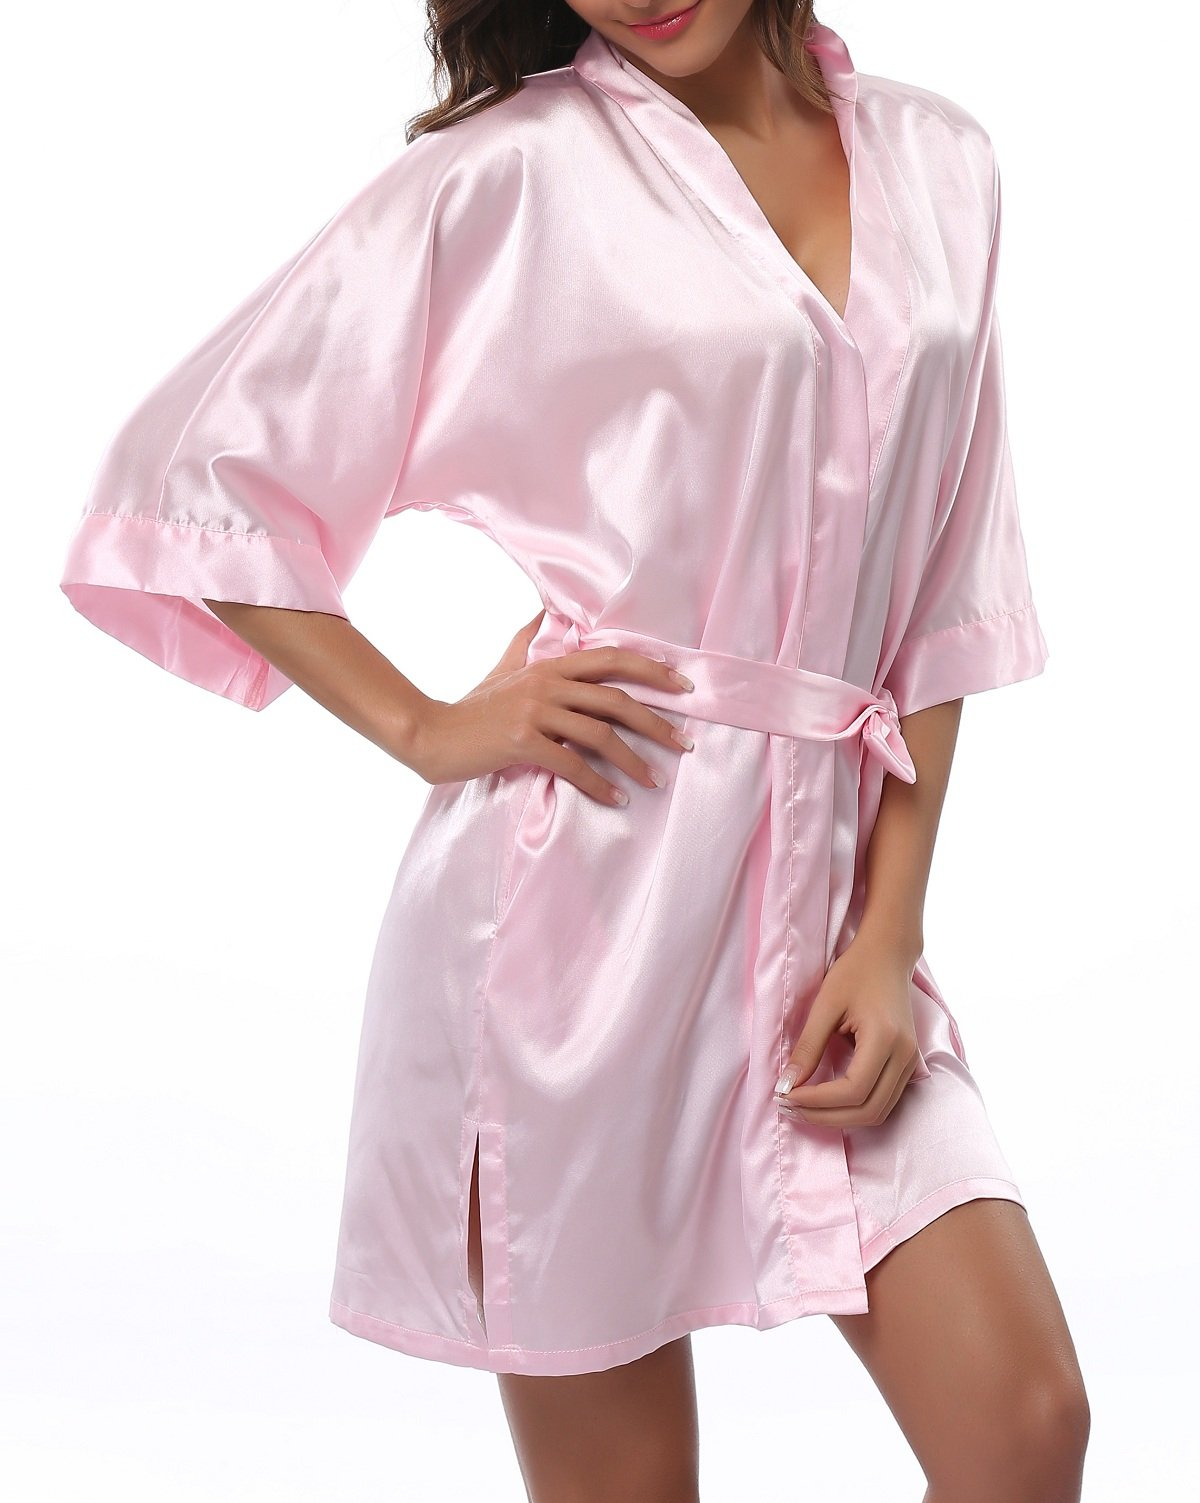 FADSHOW Women's Satin Robes Short Wedding Robes for Bridal Party,Light Pink,Large